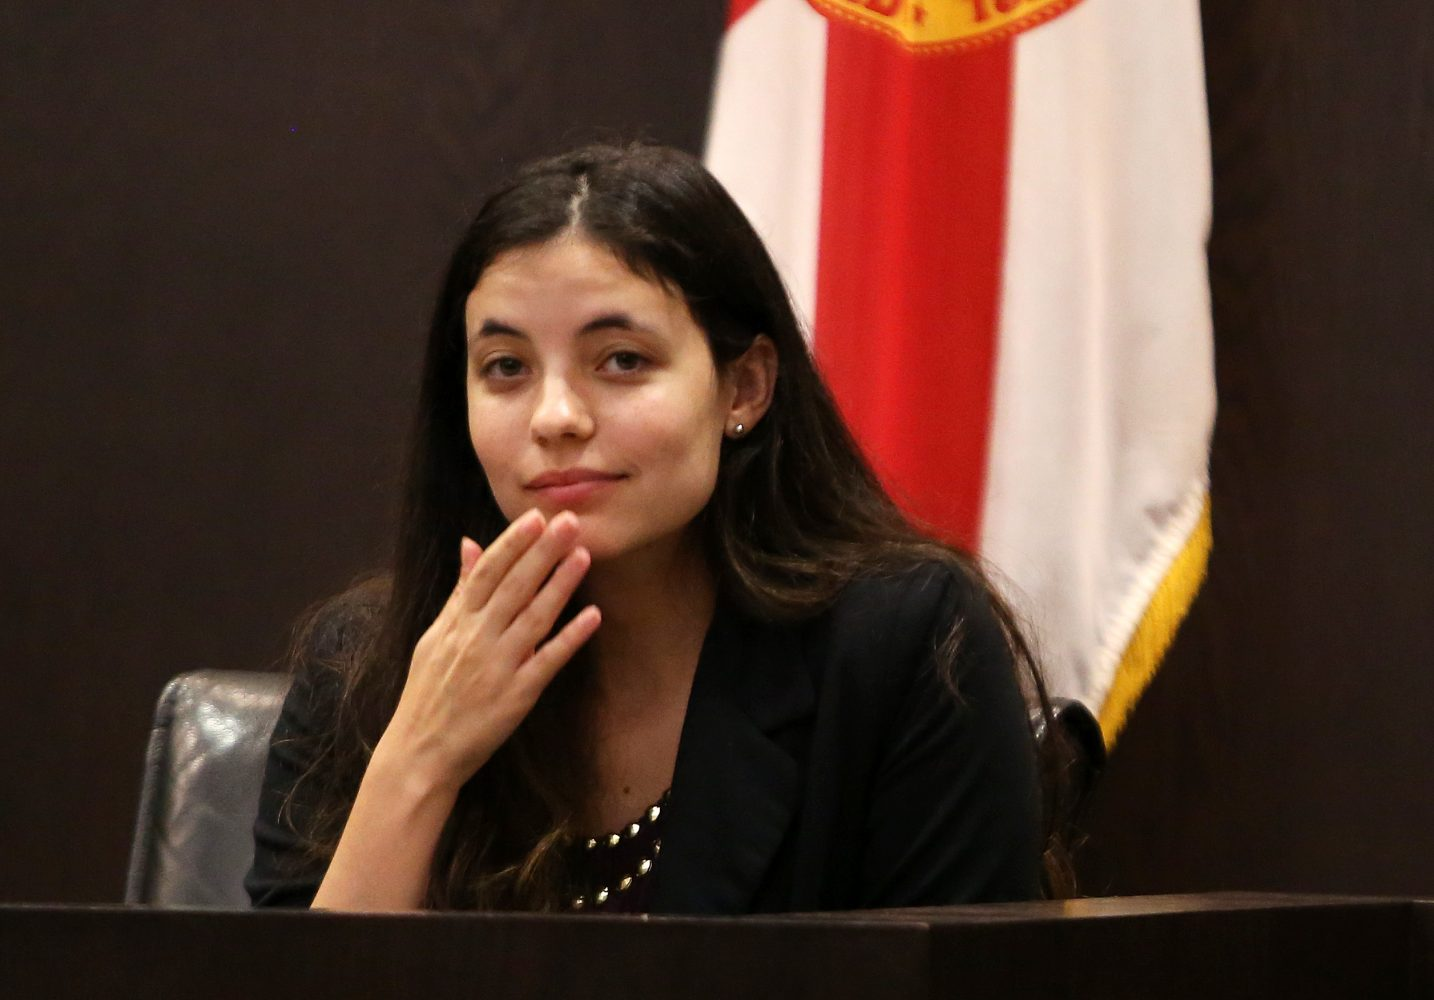 Erika Friman, the girlfriend of victim Christian Aguilar, blows a kiss to the Aguilar family during a pause in her testimony during the murder trial of Pedro Bravo in courtroom 1B of the Alachua County Criminal Justice Center Wednesday, August 6, 2014.  (Doug Finger/The Gainesville Sun/Pool)